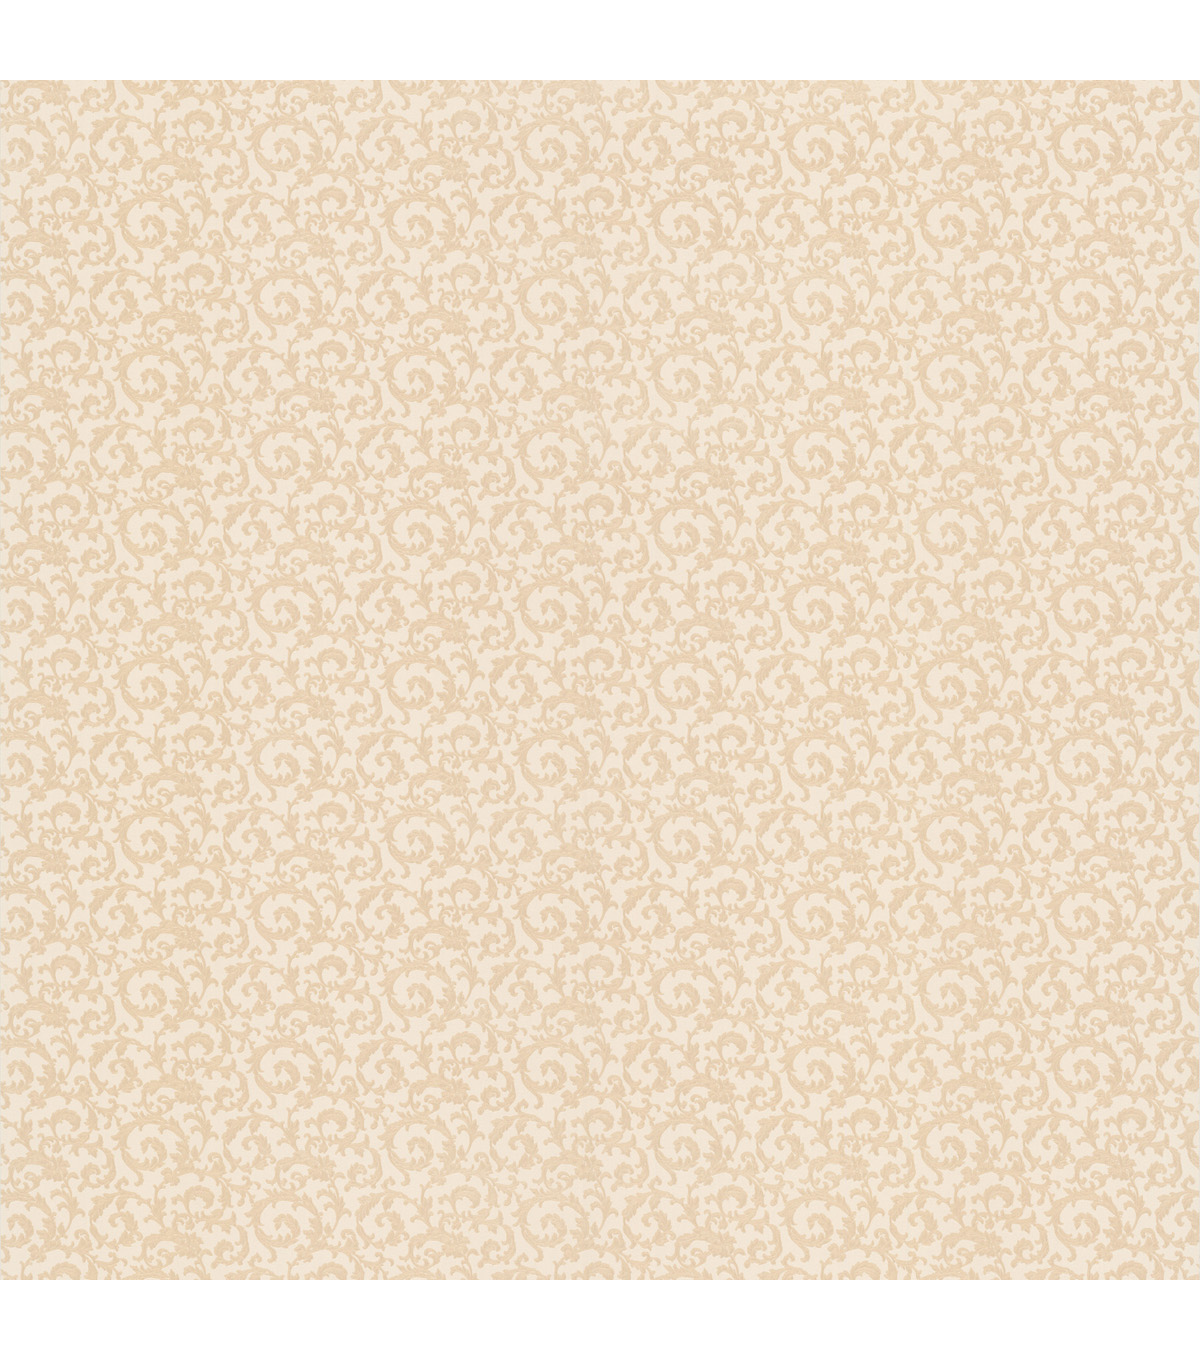 Wembley Champagne Scroll Texture Wallpaper